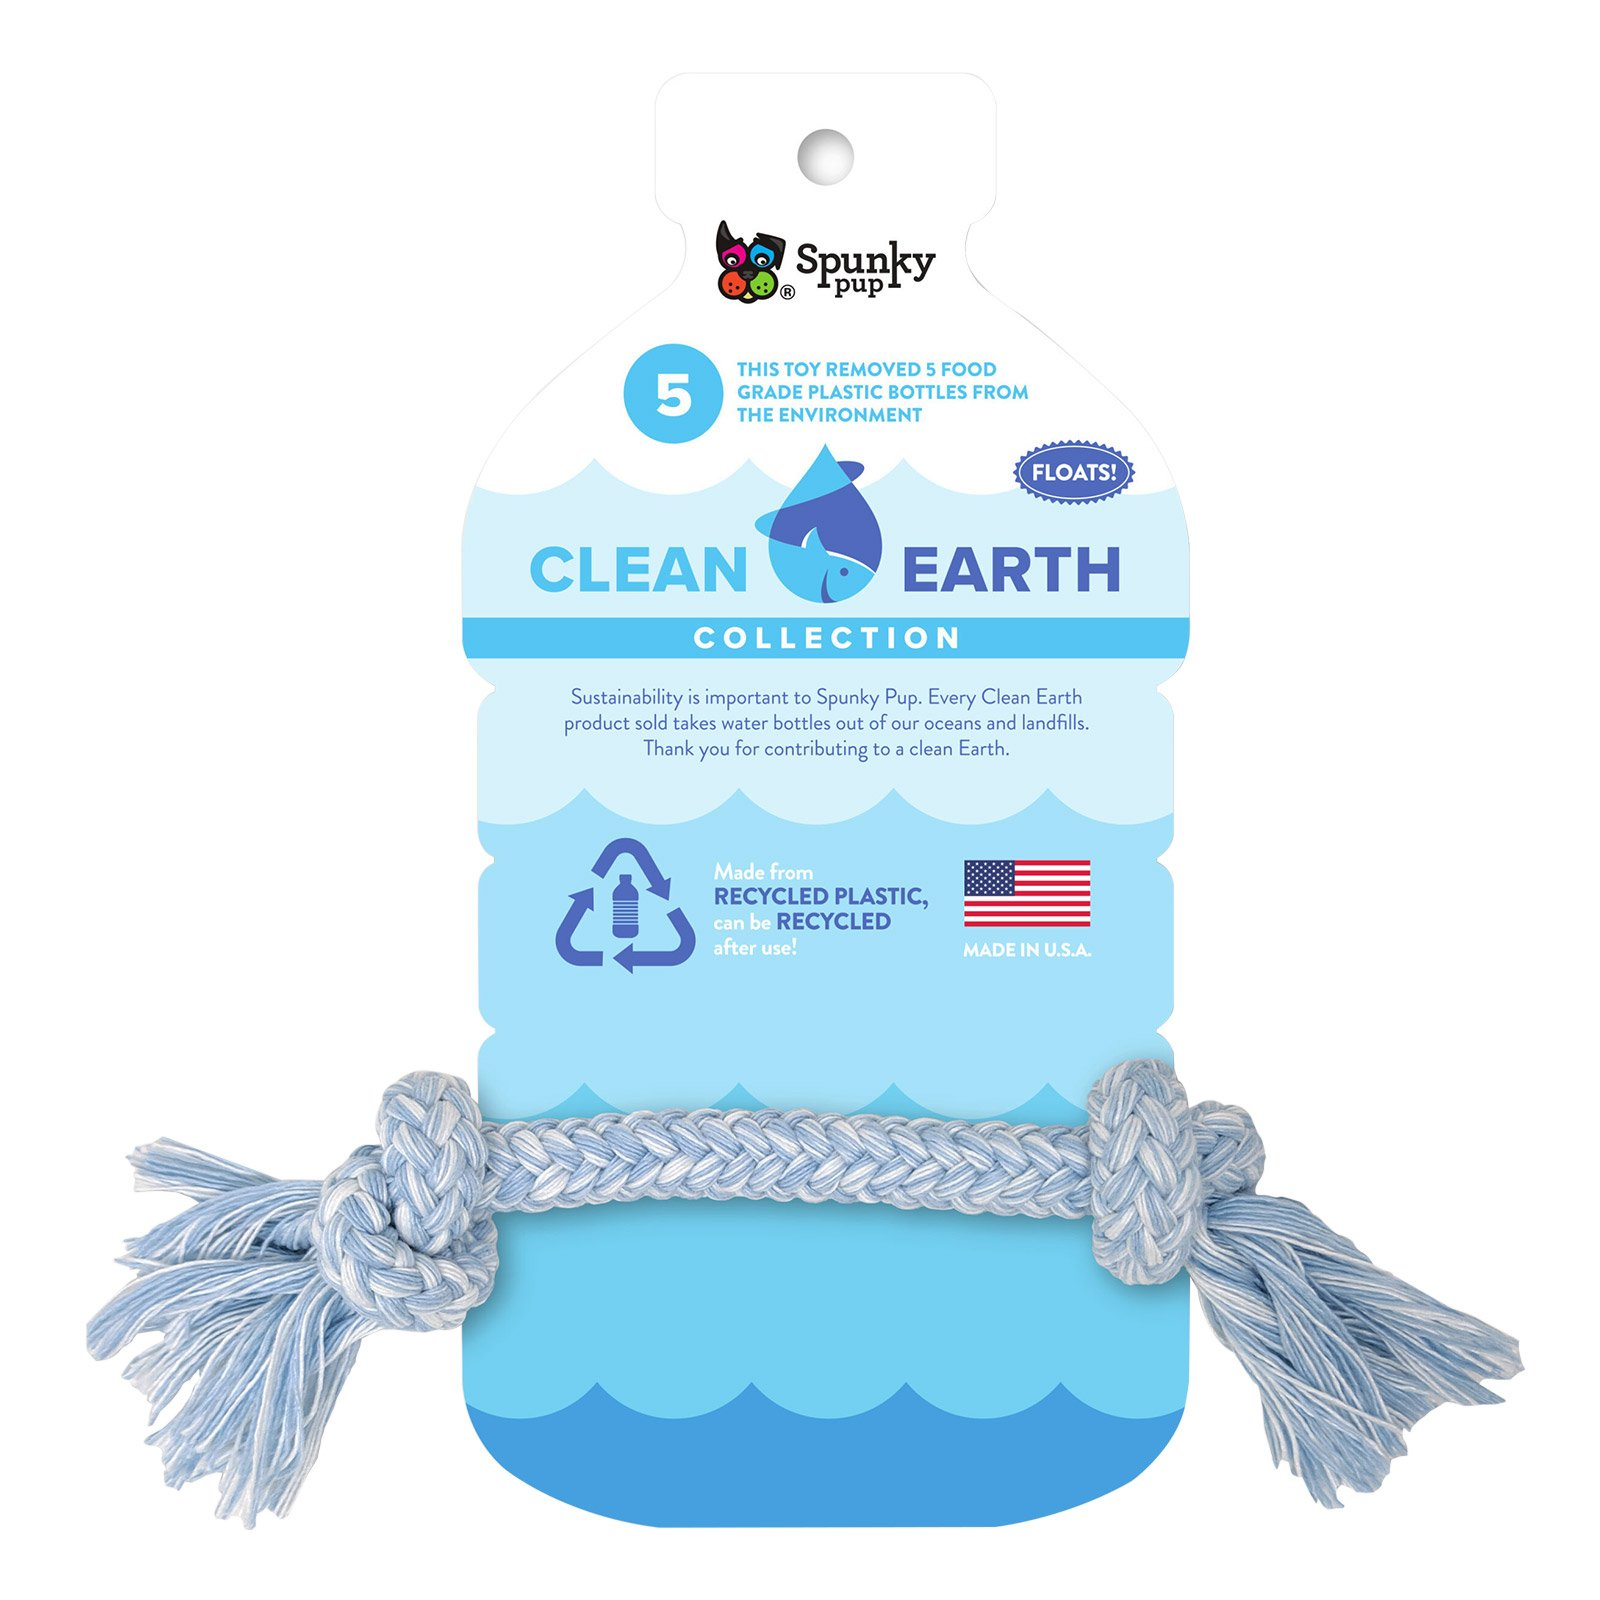 Spunky-pup-Clean-Earth-Recycled-Rope-Small_07132021_001934.jpg